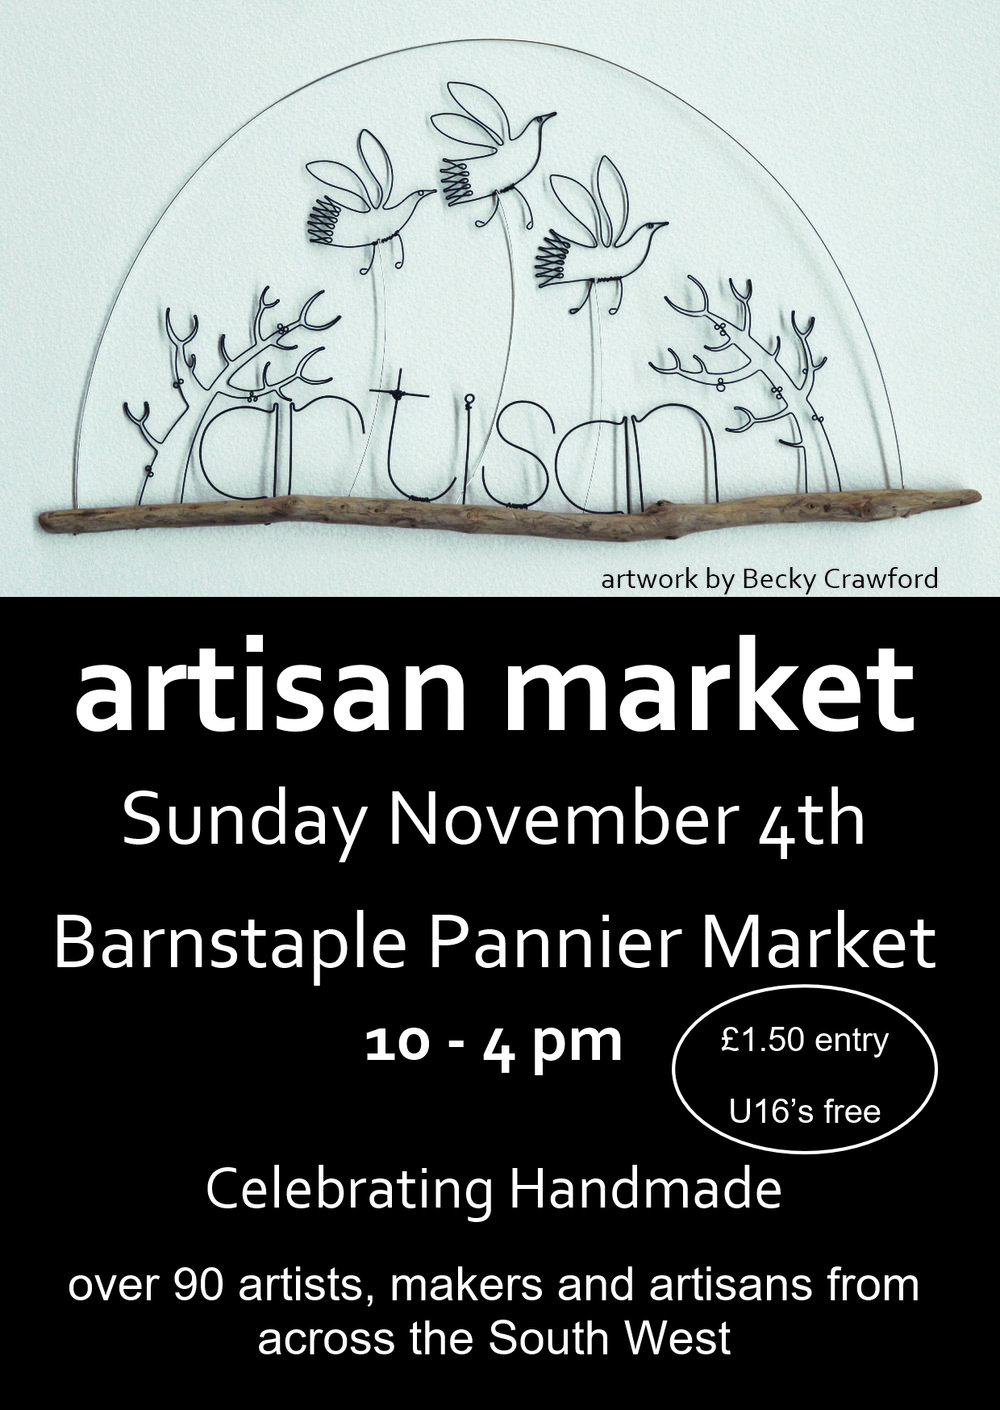 e invite for Artisan market.jpg